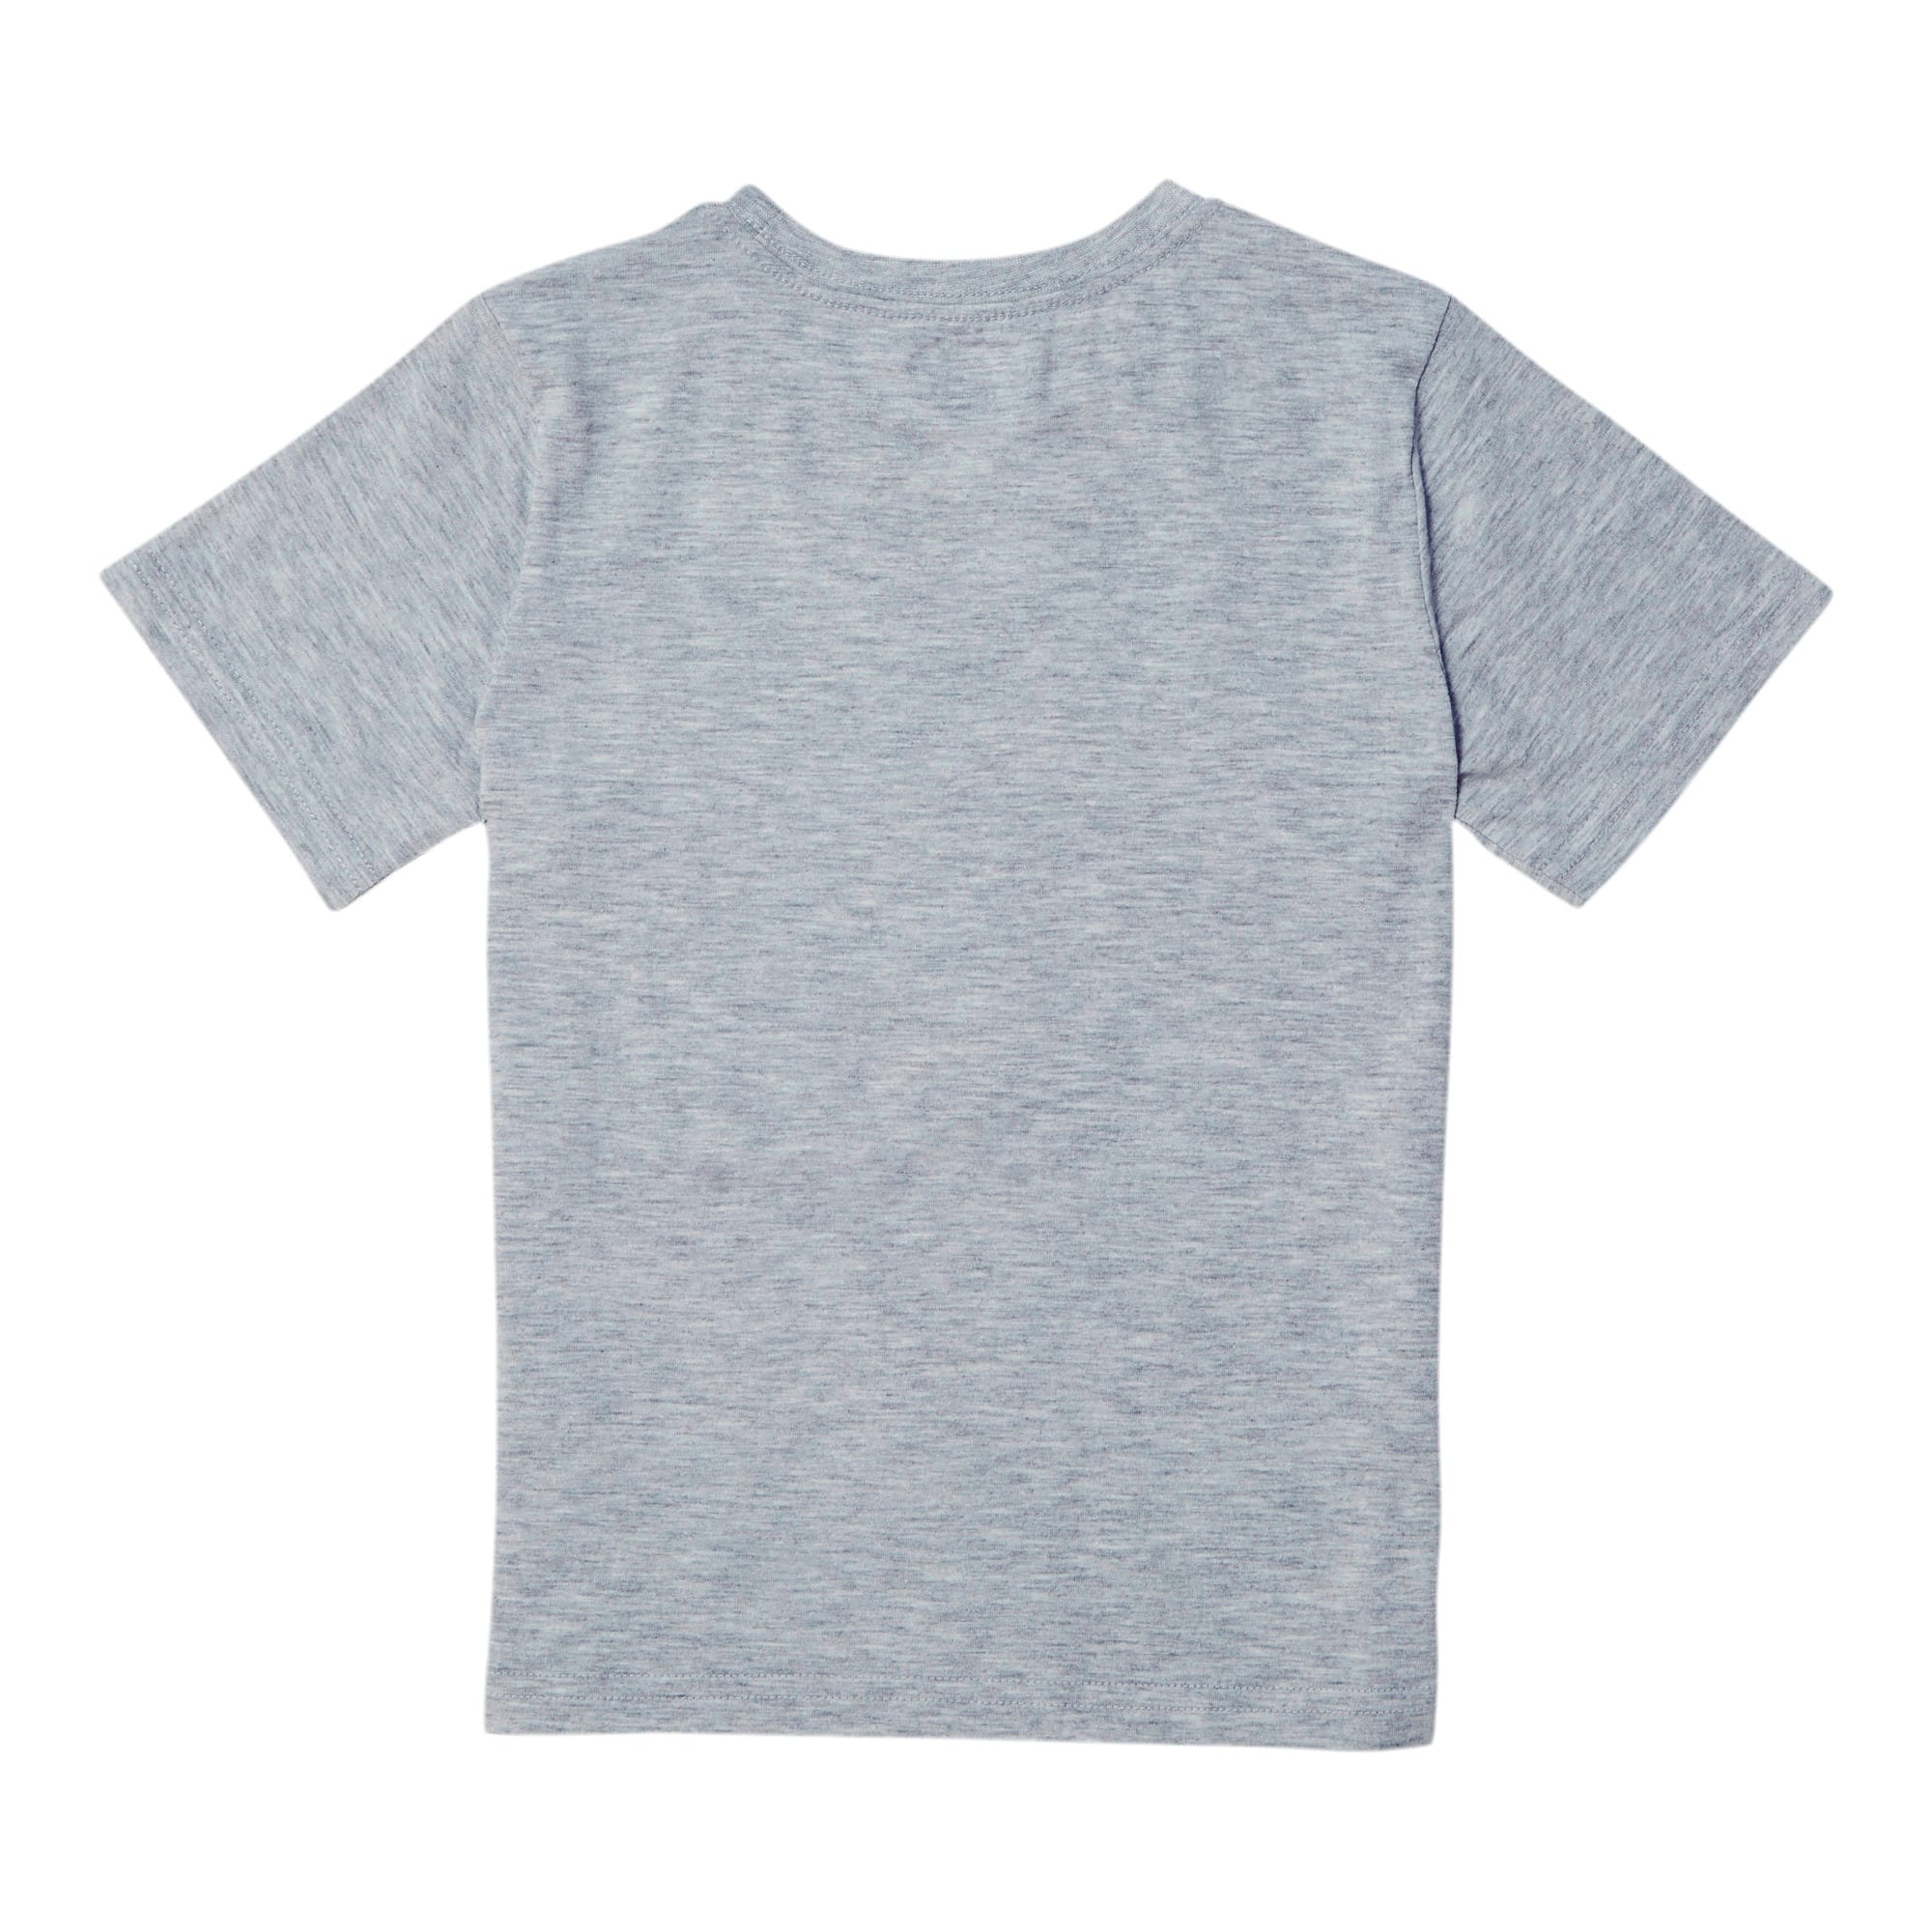 Thumbnail 2 of Classics Pack Little Kids' Archive Logo Tee, LT HEATHER GREY, medium